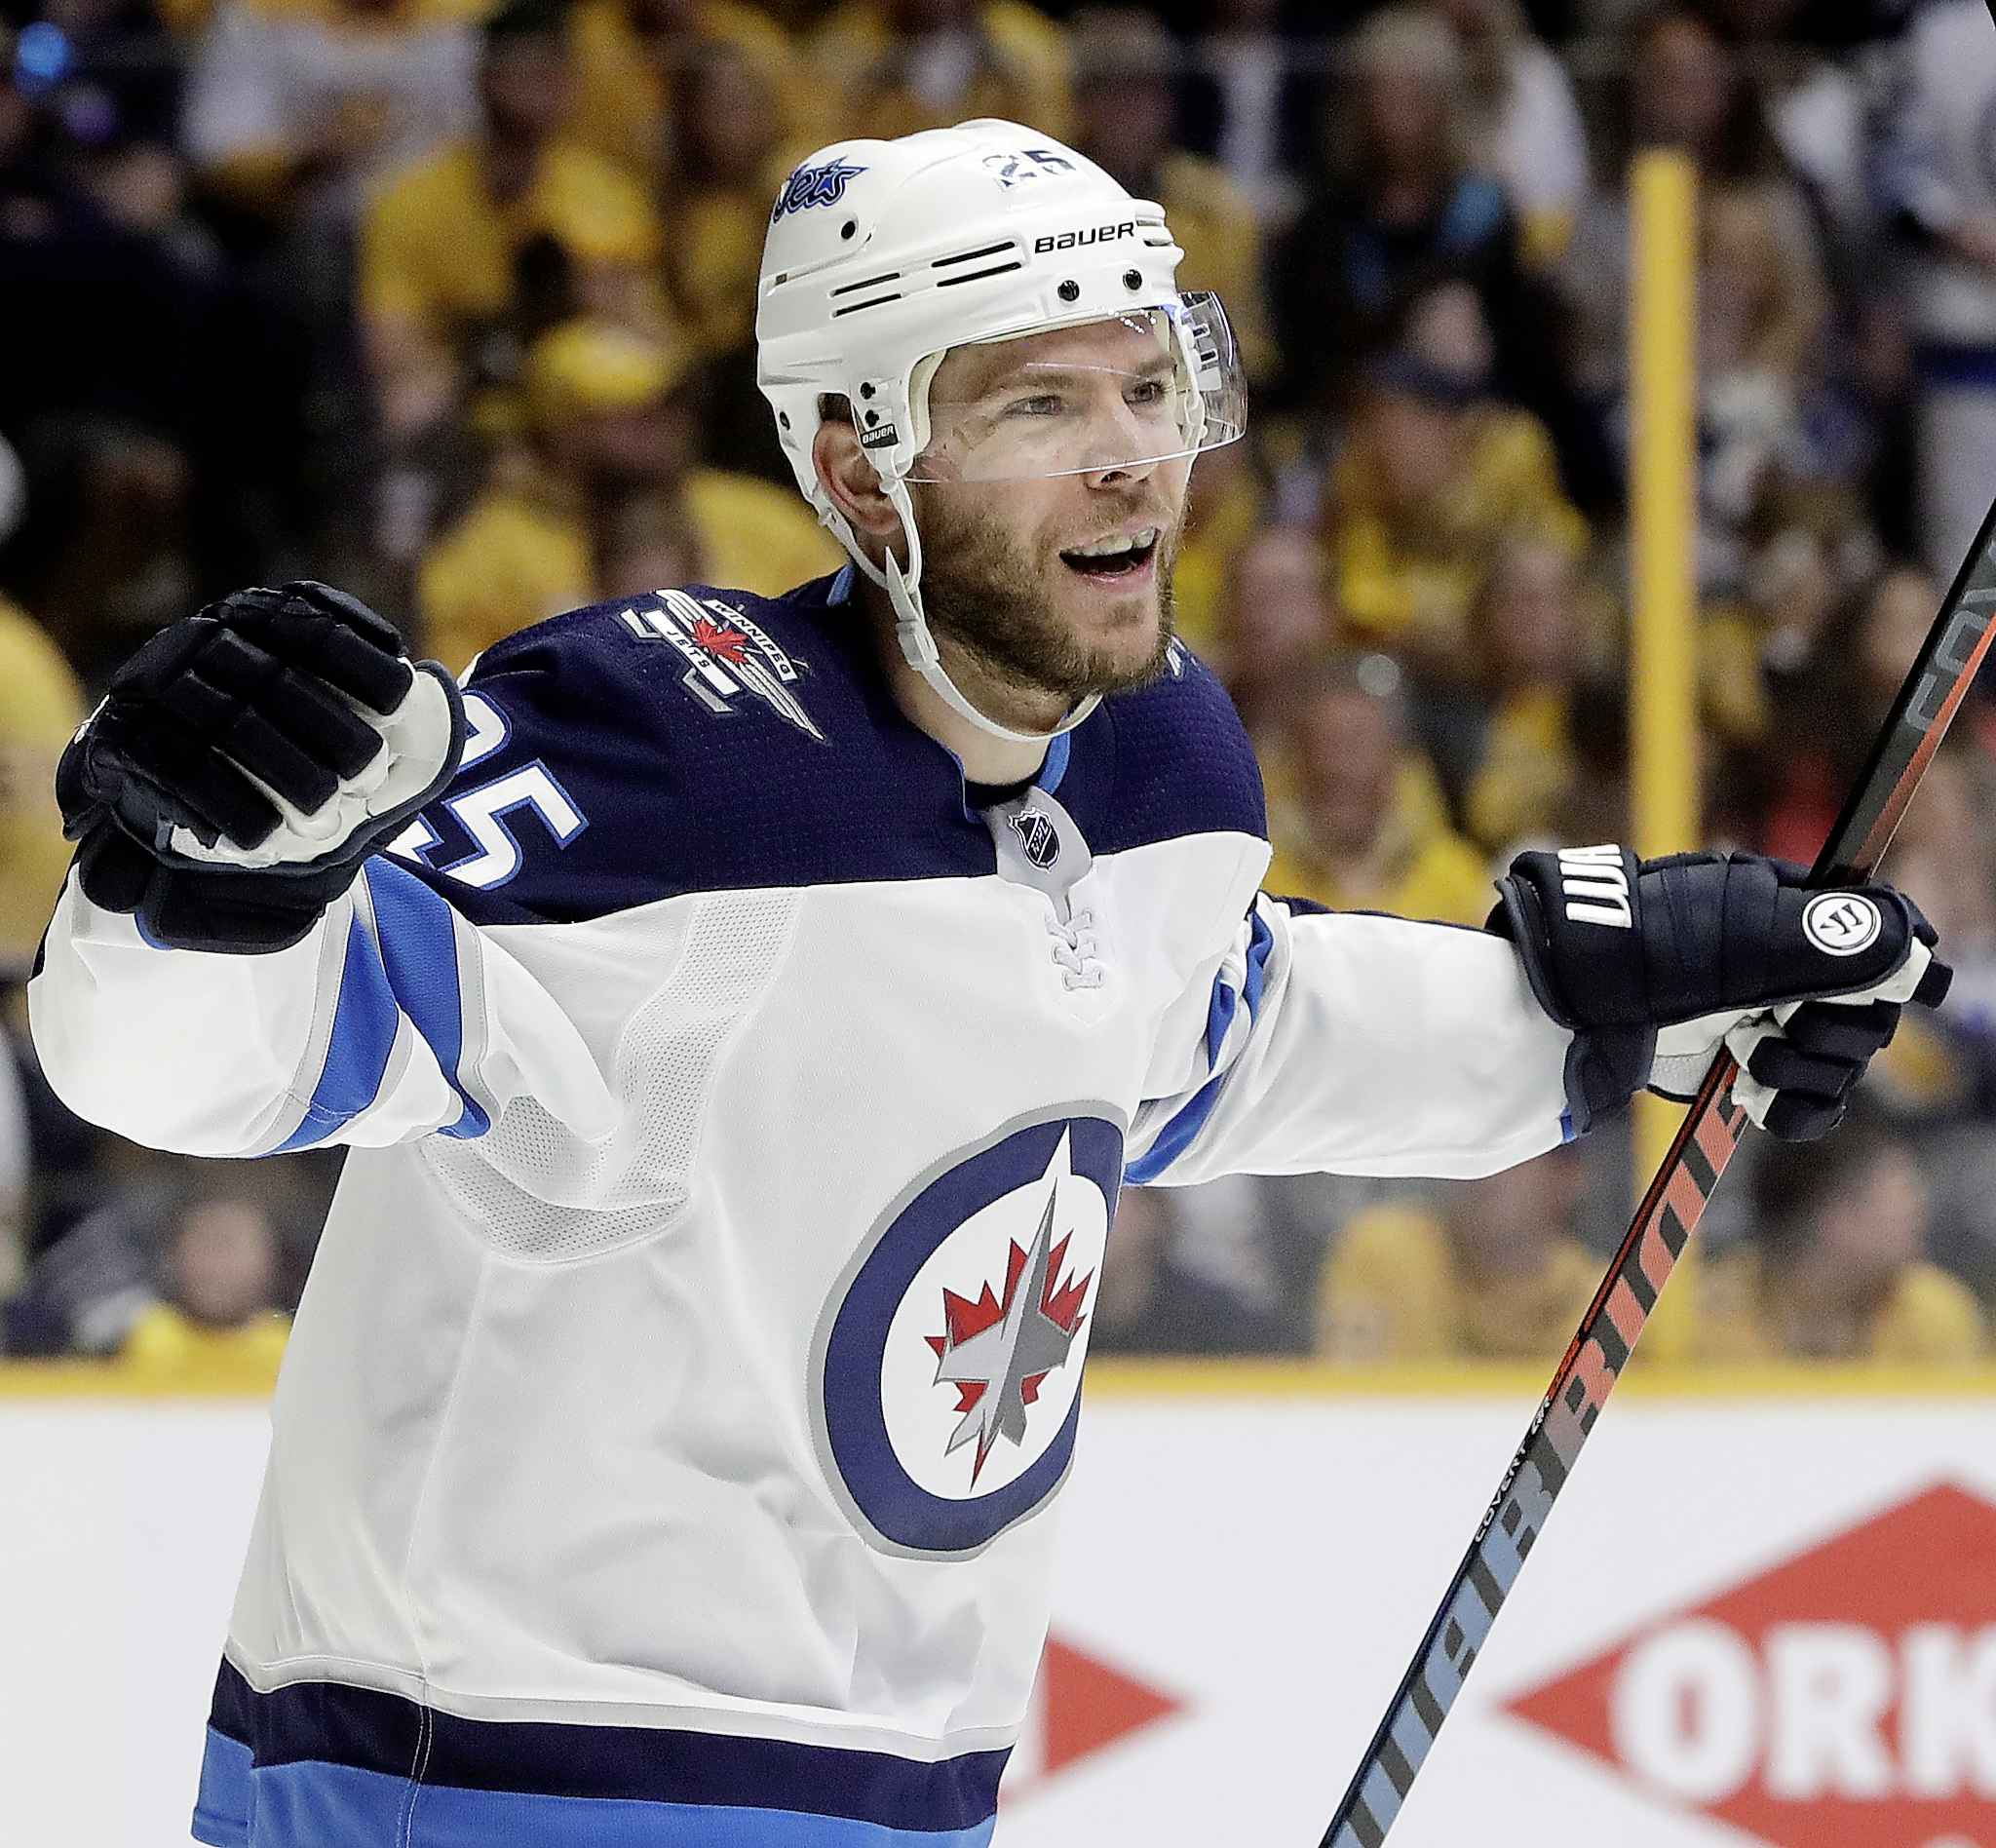 The Winnipeg Jets acquired centre Paul Stastny from the St. Louis Blues near the NHL trade deadline to help fuel their deep playoff run last season.